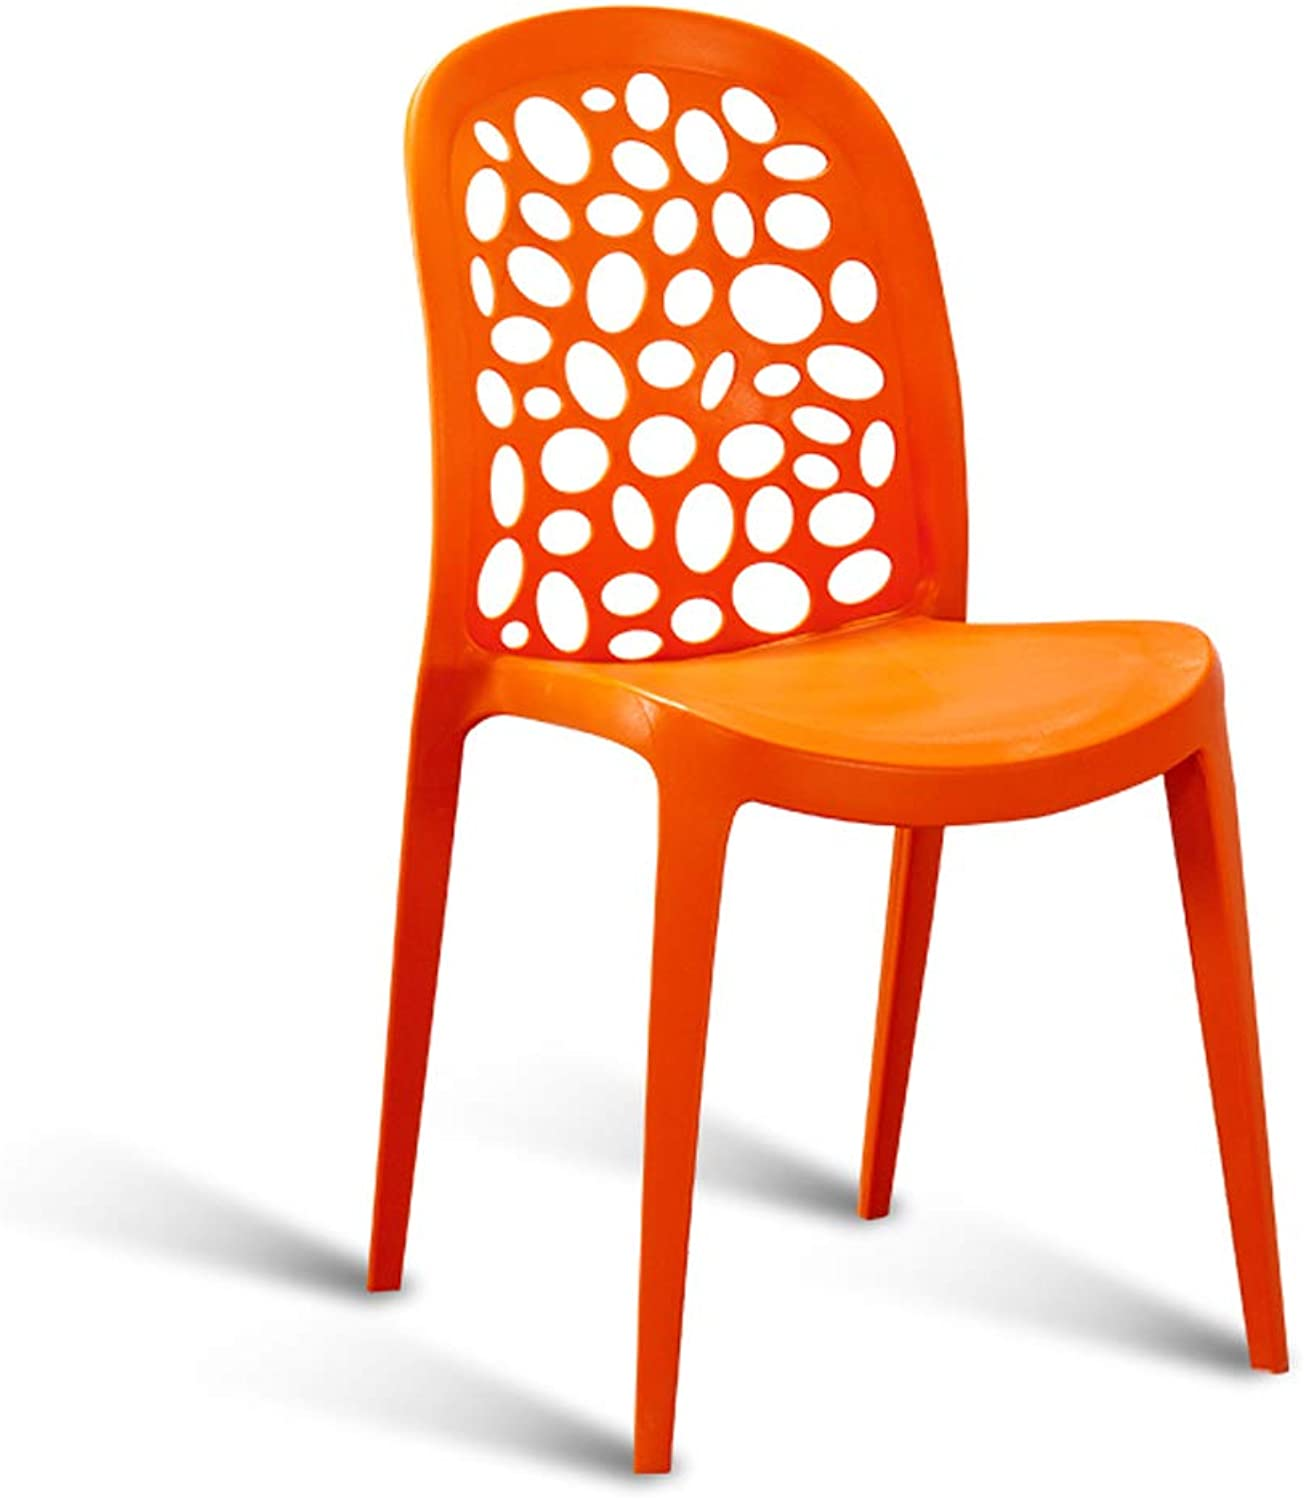 LRW Fashionable Plastic Household Chair, Creative Simple Back Computer Chair, Modern Personality Stool, Leisure Dining Chair, orange